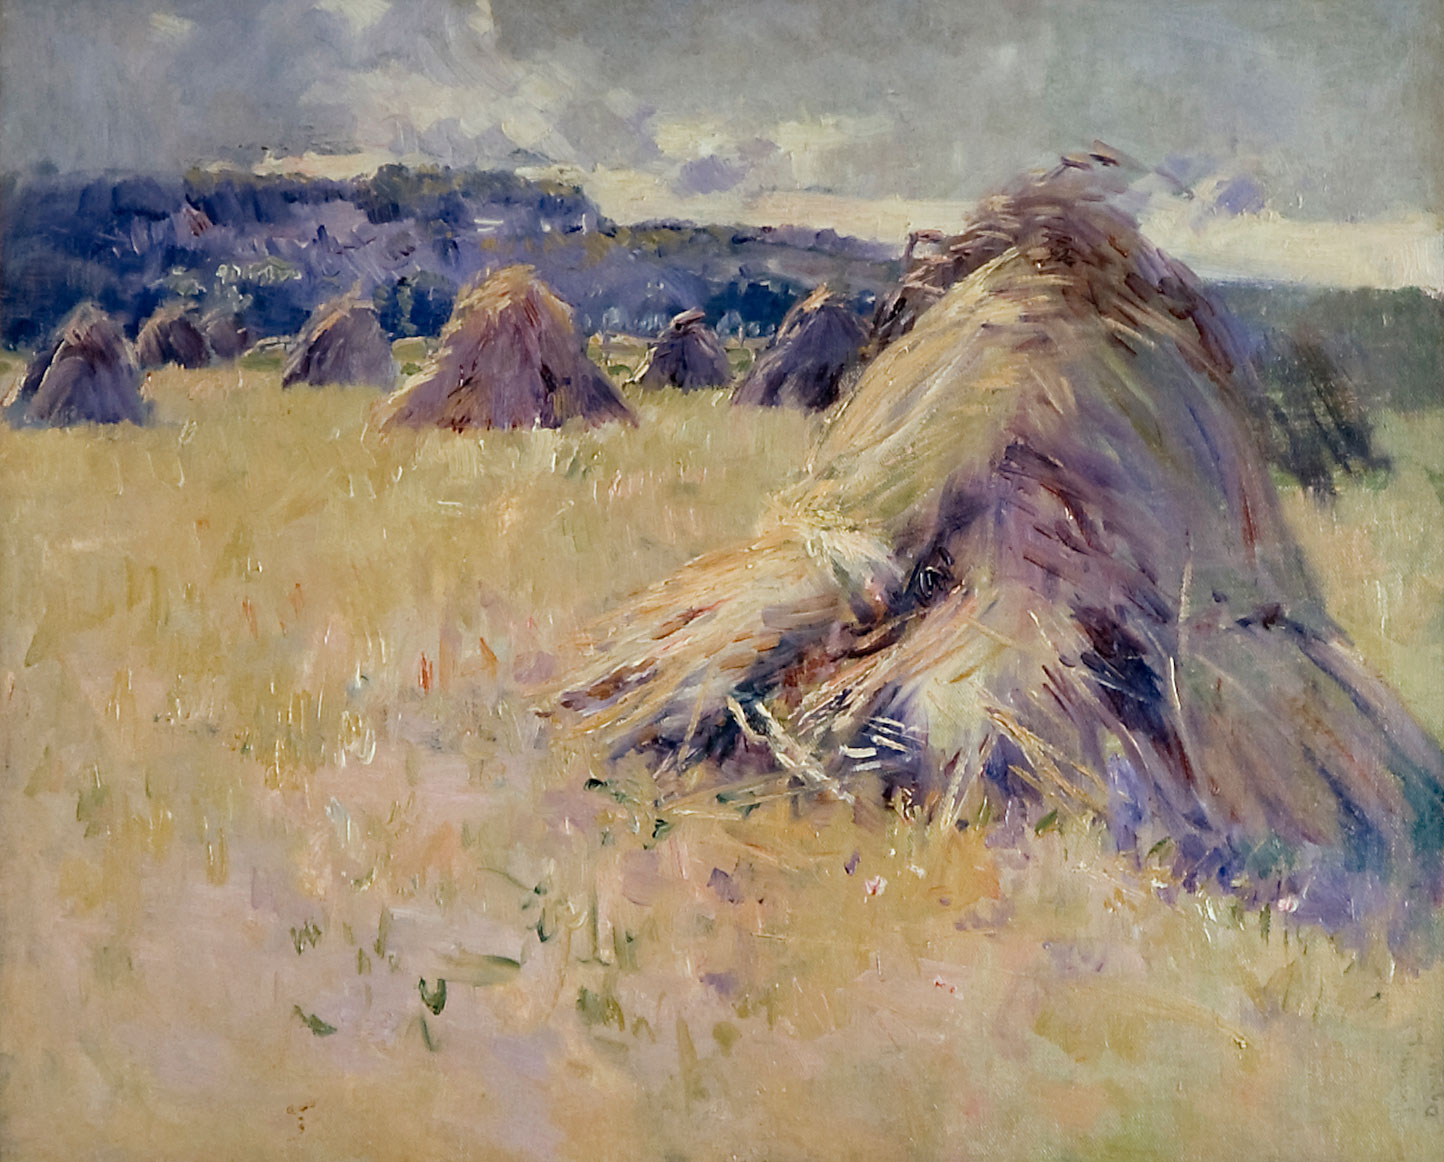 An impressionist painting of haystacks in a field.